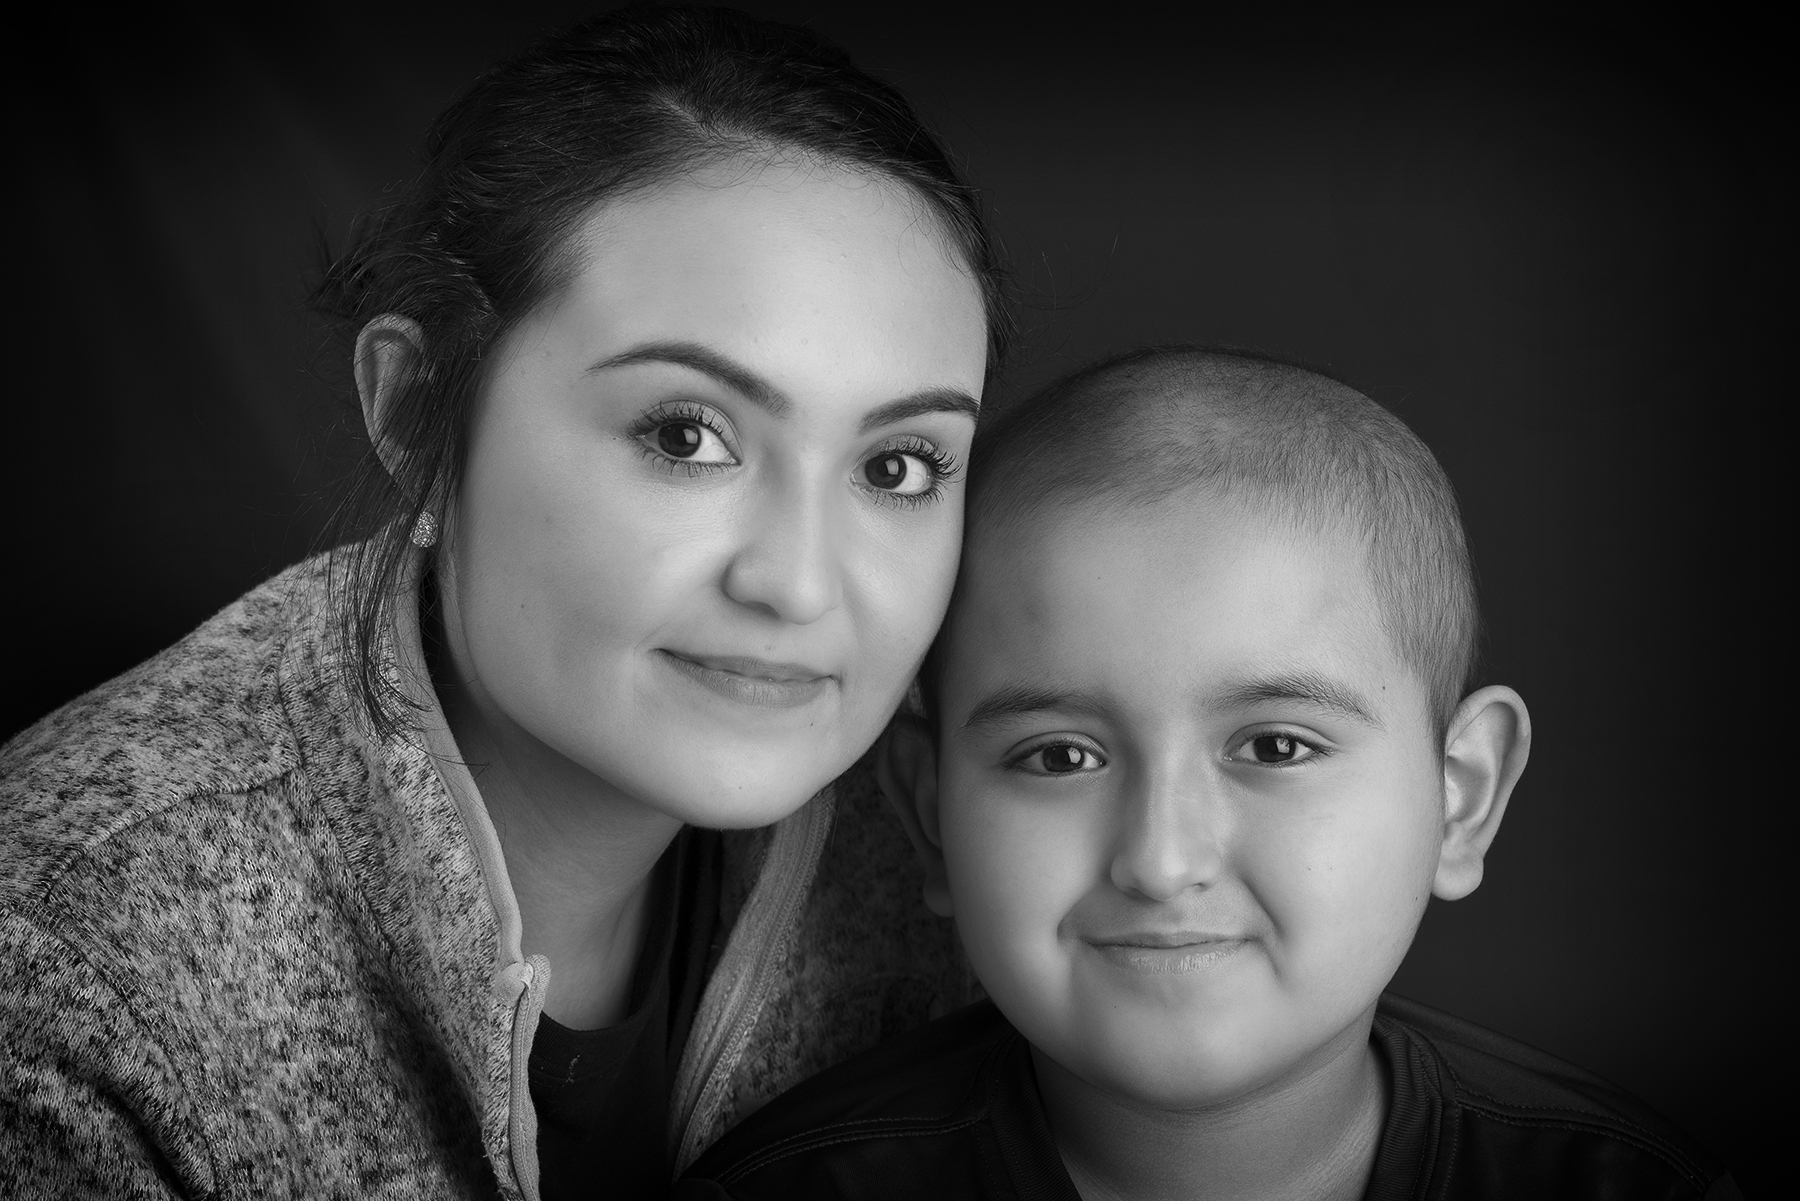 #flashesofhope, #love, #mother, #cancer